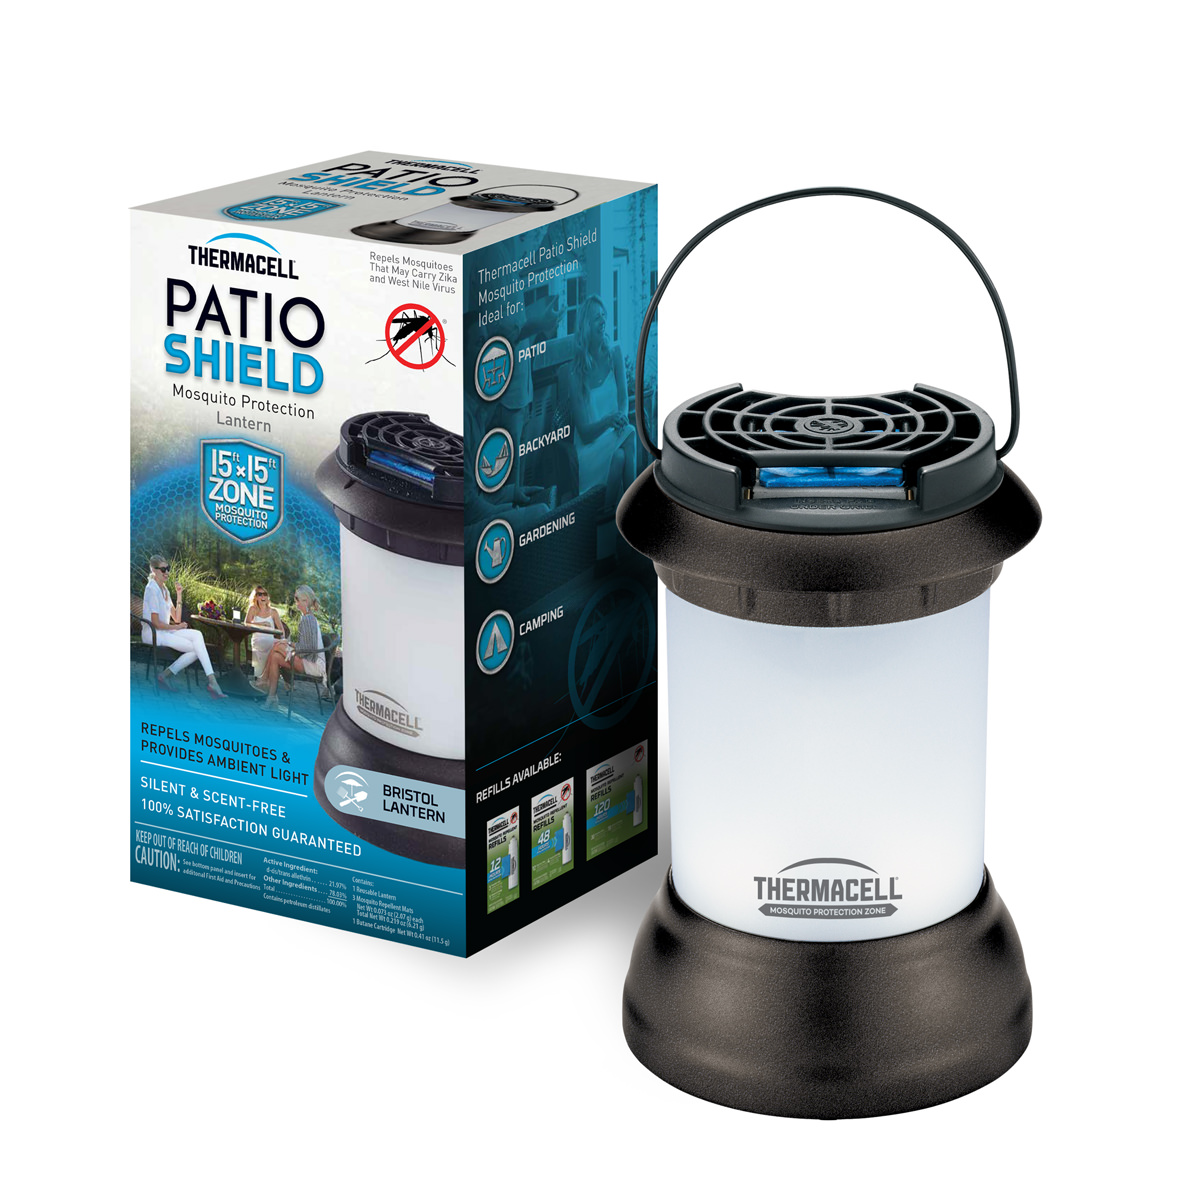 Thermacell Mosquito Repellent Bristol Lantern, Repellent + Light by Thermacell